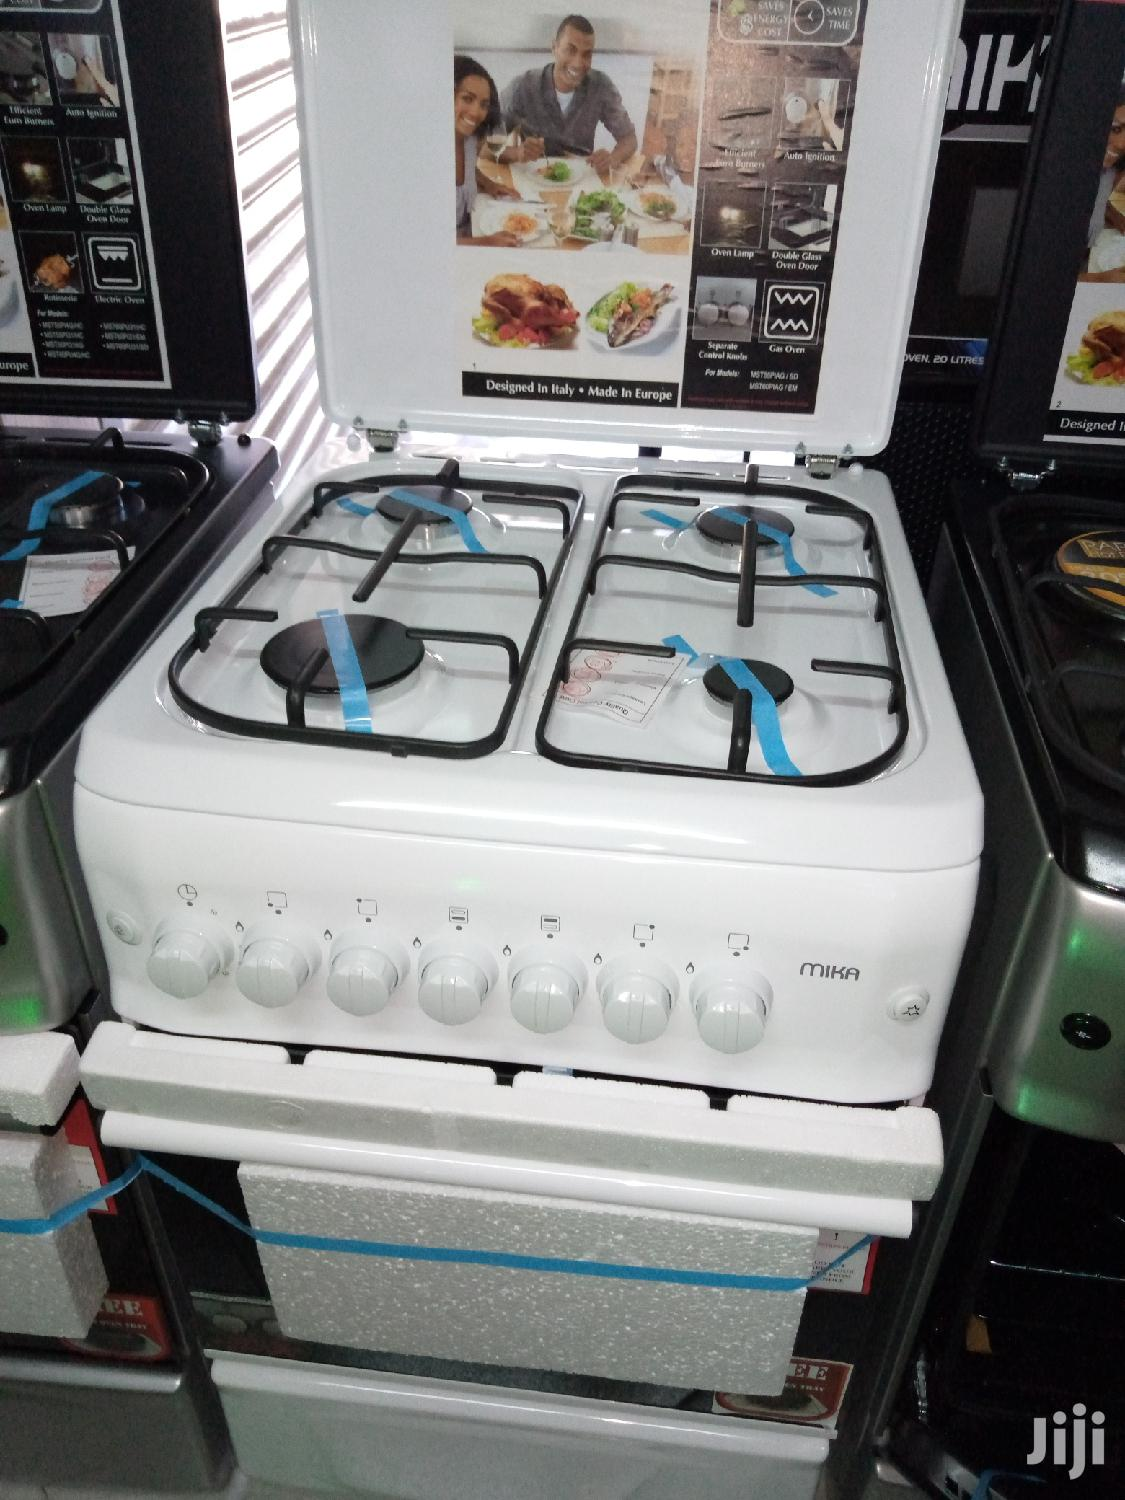 New Stock Arrivals 🔥 🔥 Brand New Mika Standing Cookers   Kitchen Appliances for sale in Kisauni, Mombasa, Kenya